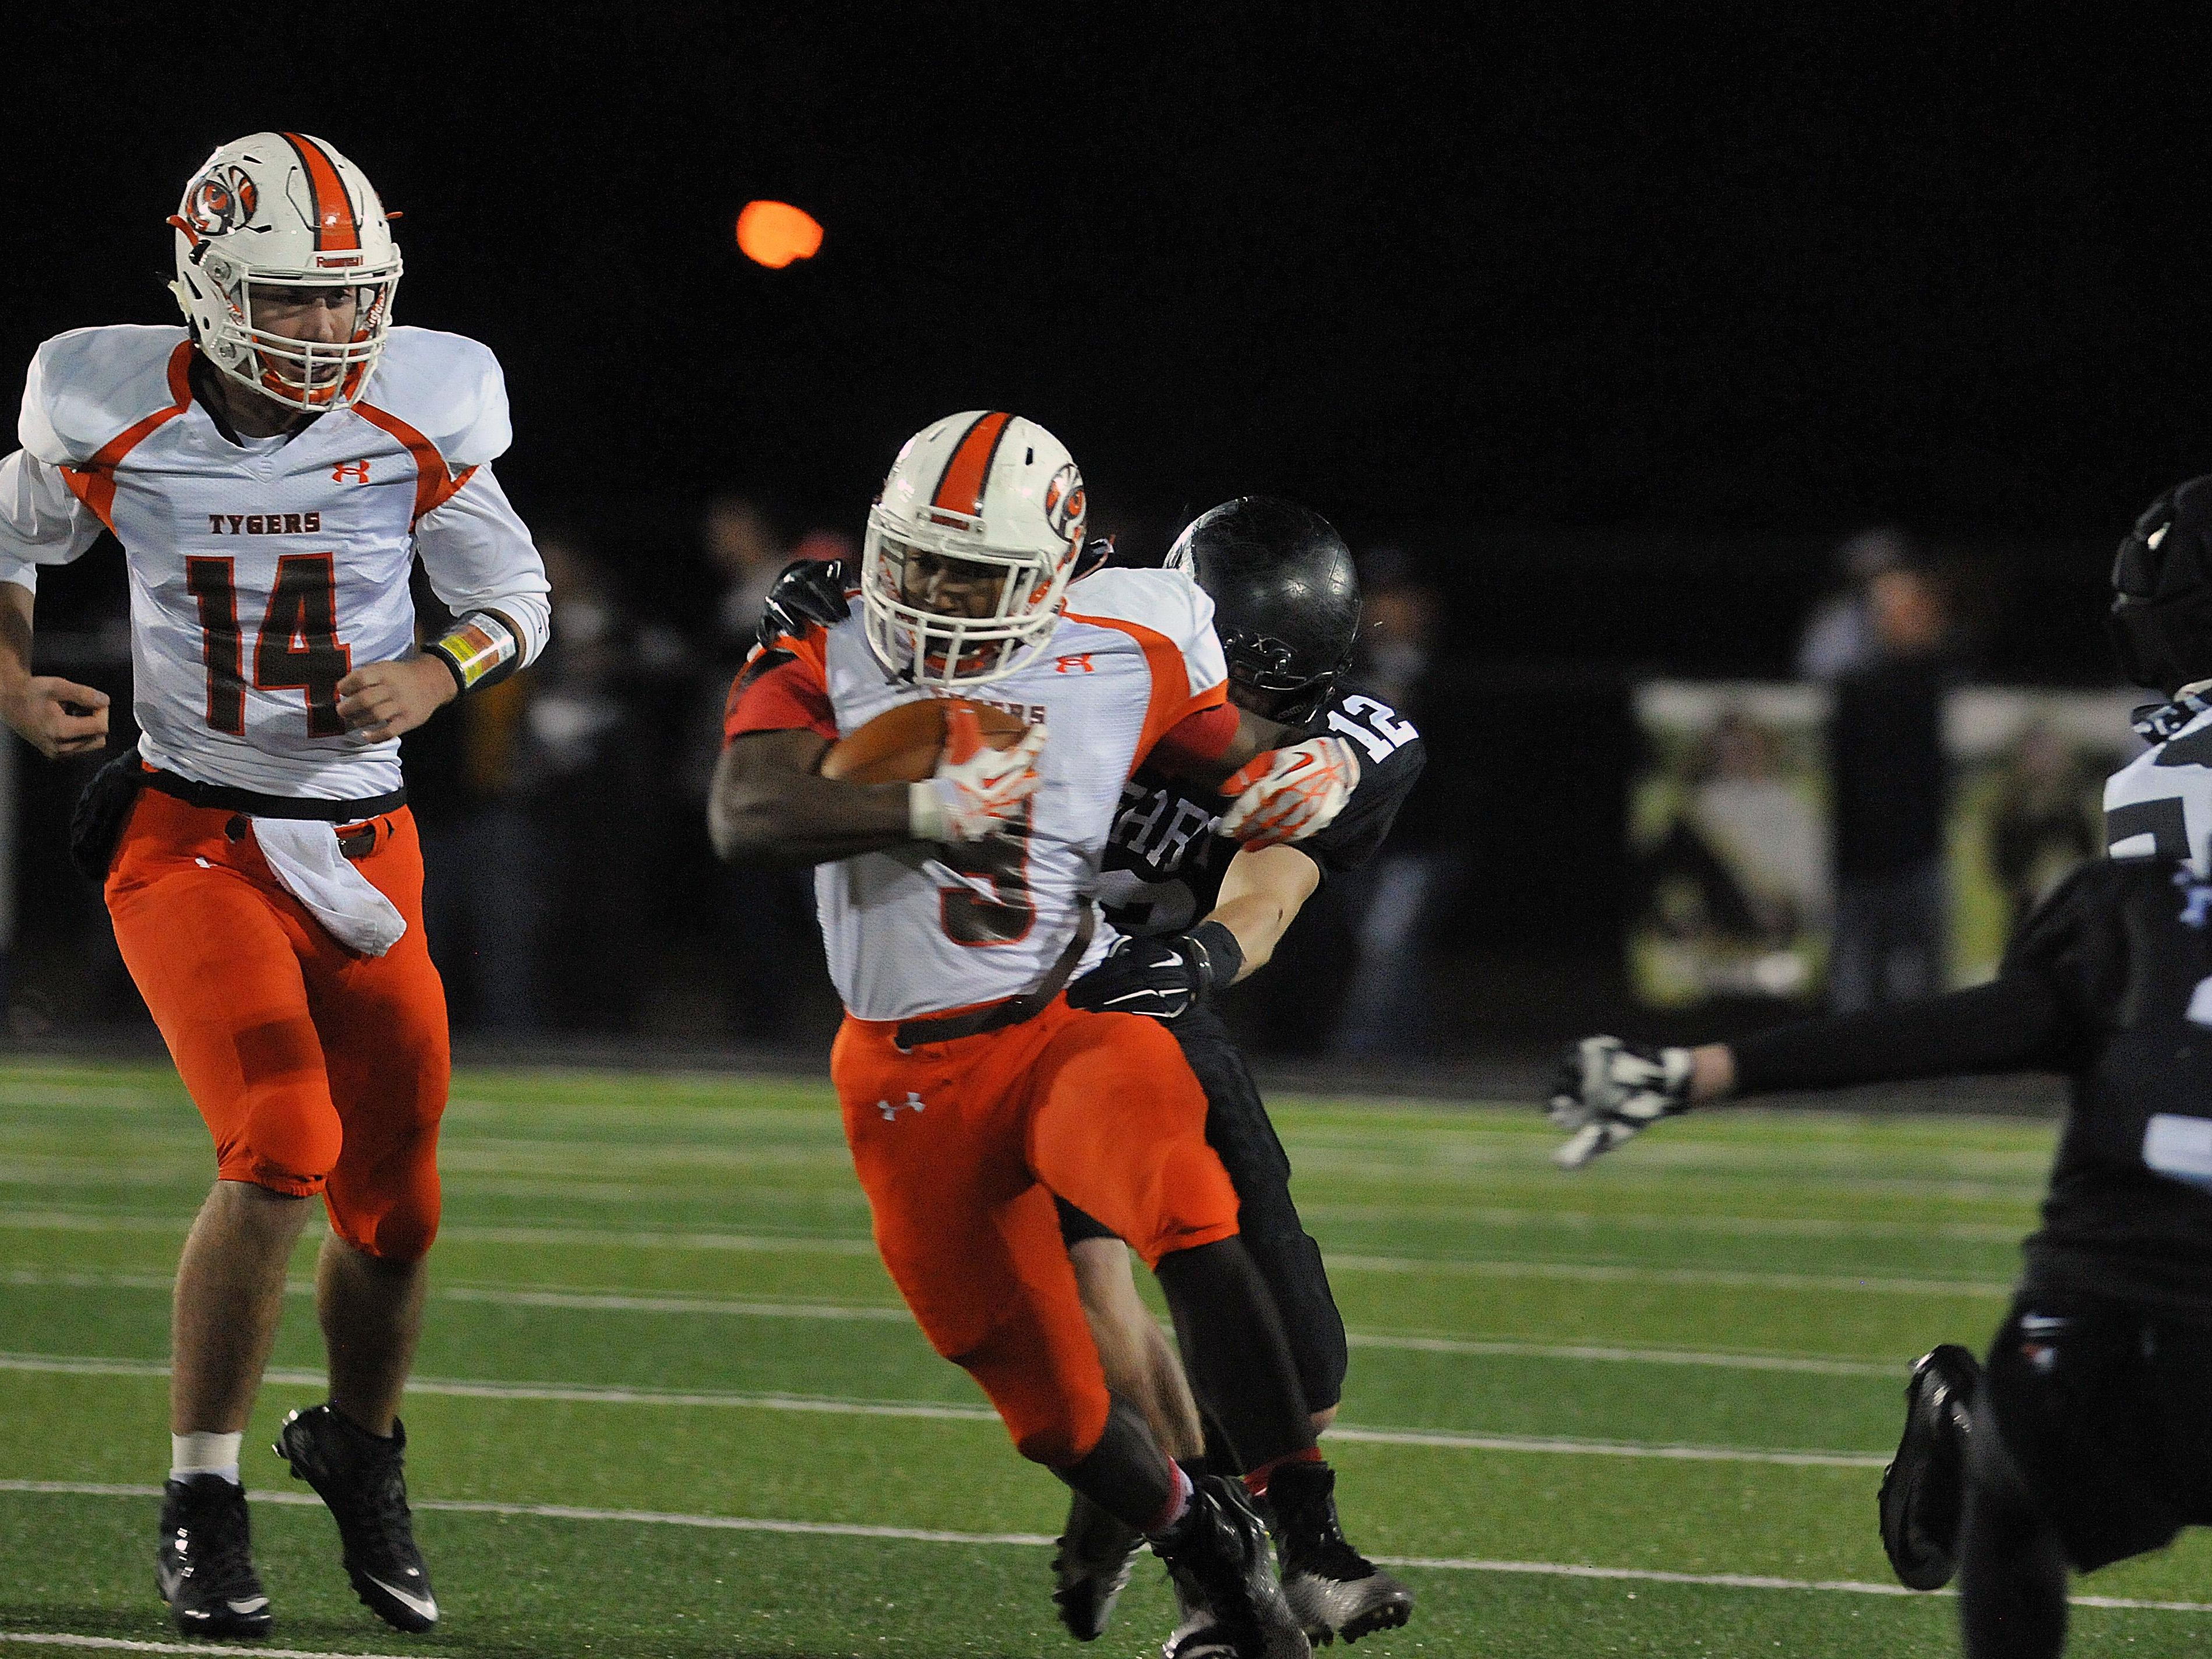 Mansfield Senior running back Brian Benson runs for yards against Massillon Perry in a high school football playoff game this season. Benson was named second-team All-Ohio as a running back in Division II.